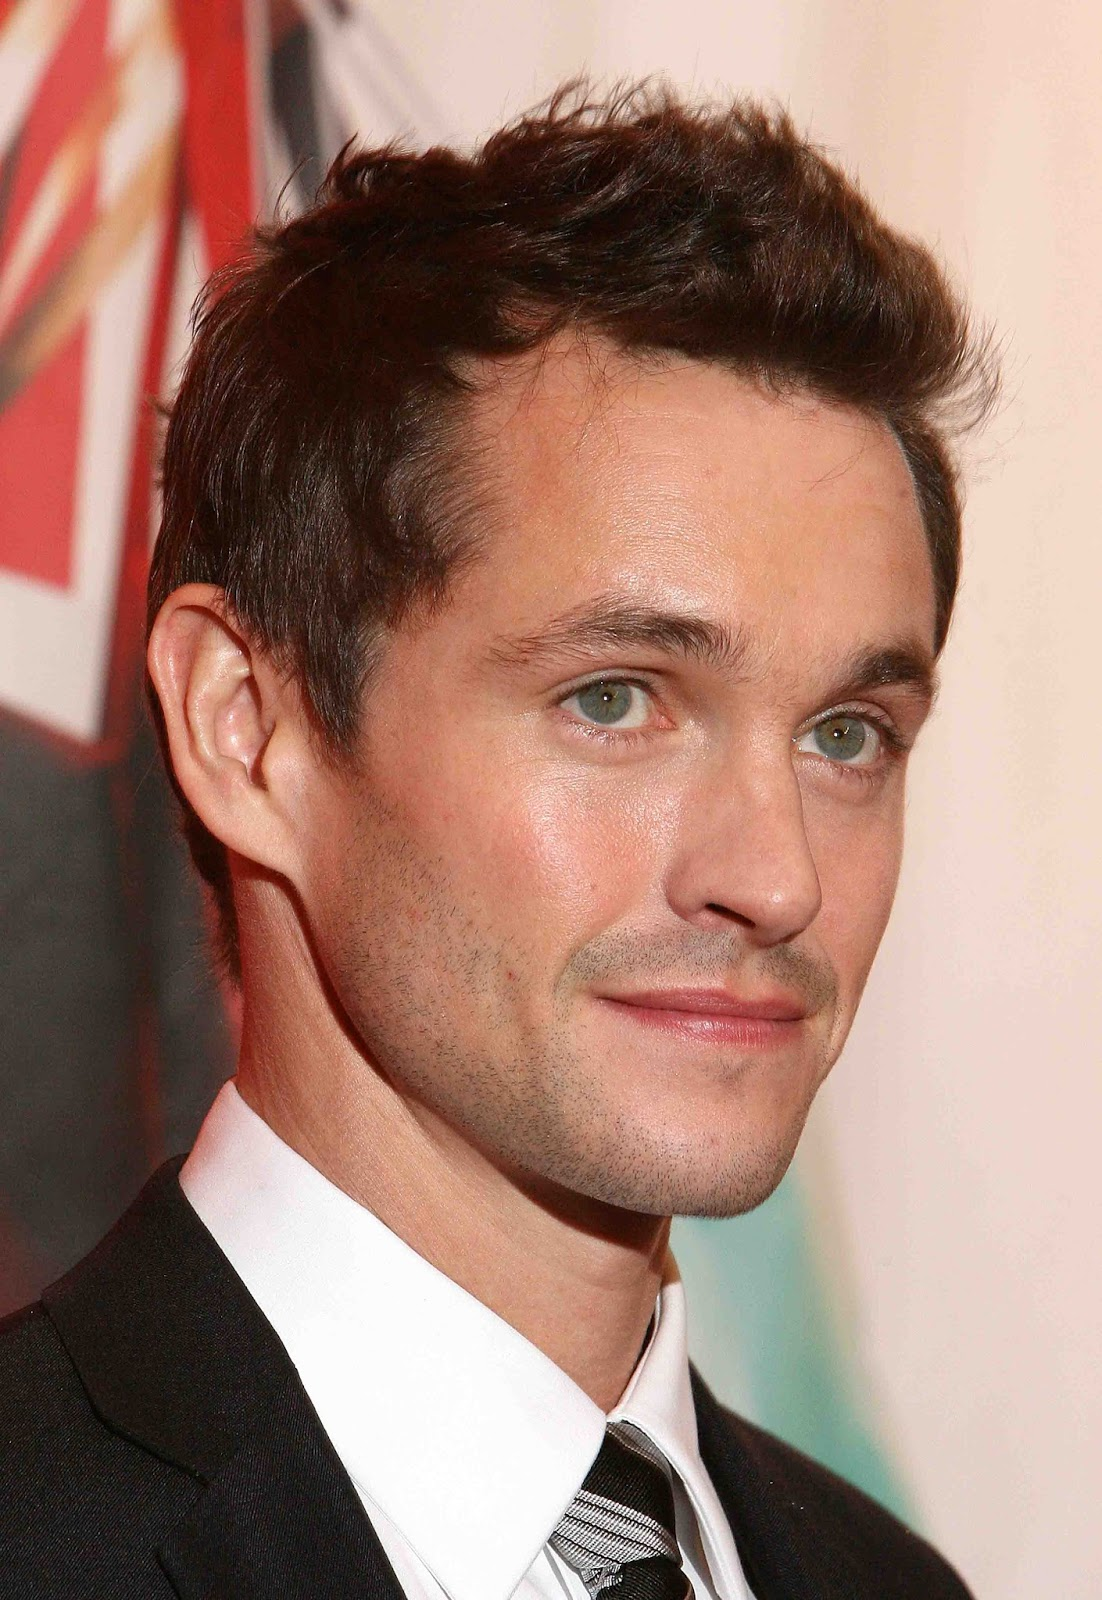 hugh dancy and claire daneshugh dancy gif, hugh dancy photoshoot, hugh dancy young, hugh dancy height, hugh dancy and claire danes, hugh dancy net, hugh dancy will graham, hugh dancy gif tumblr, hugh dancy instagram, hugh dancy eyes, hugh dancy 2016, hugh dancy wife, hugh dancy shopaholic, hugh dancy kiss man, hugh dancy interview, hugh dancy about hannigram, hugh dancy png, hugh dancy кинопоиск, hugh dancy films, hugh dancy 50 shades darker